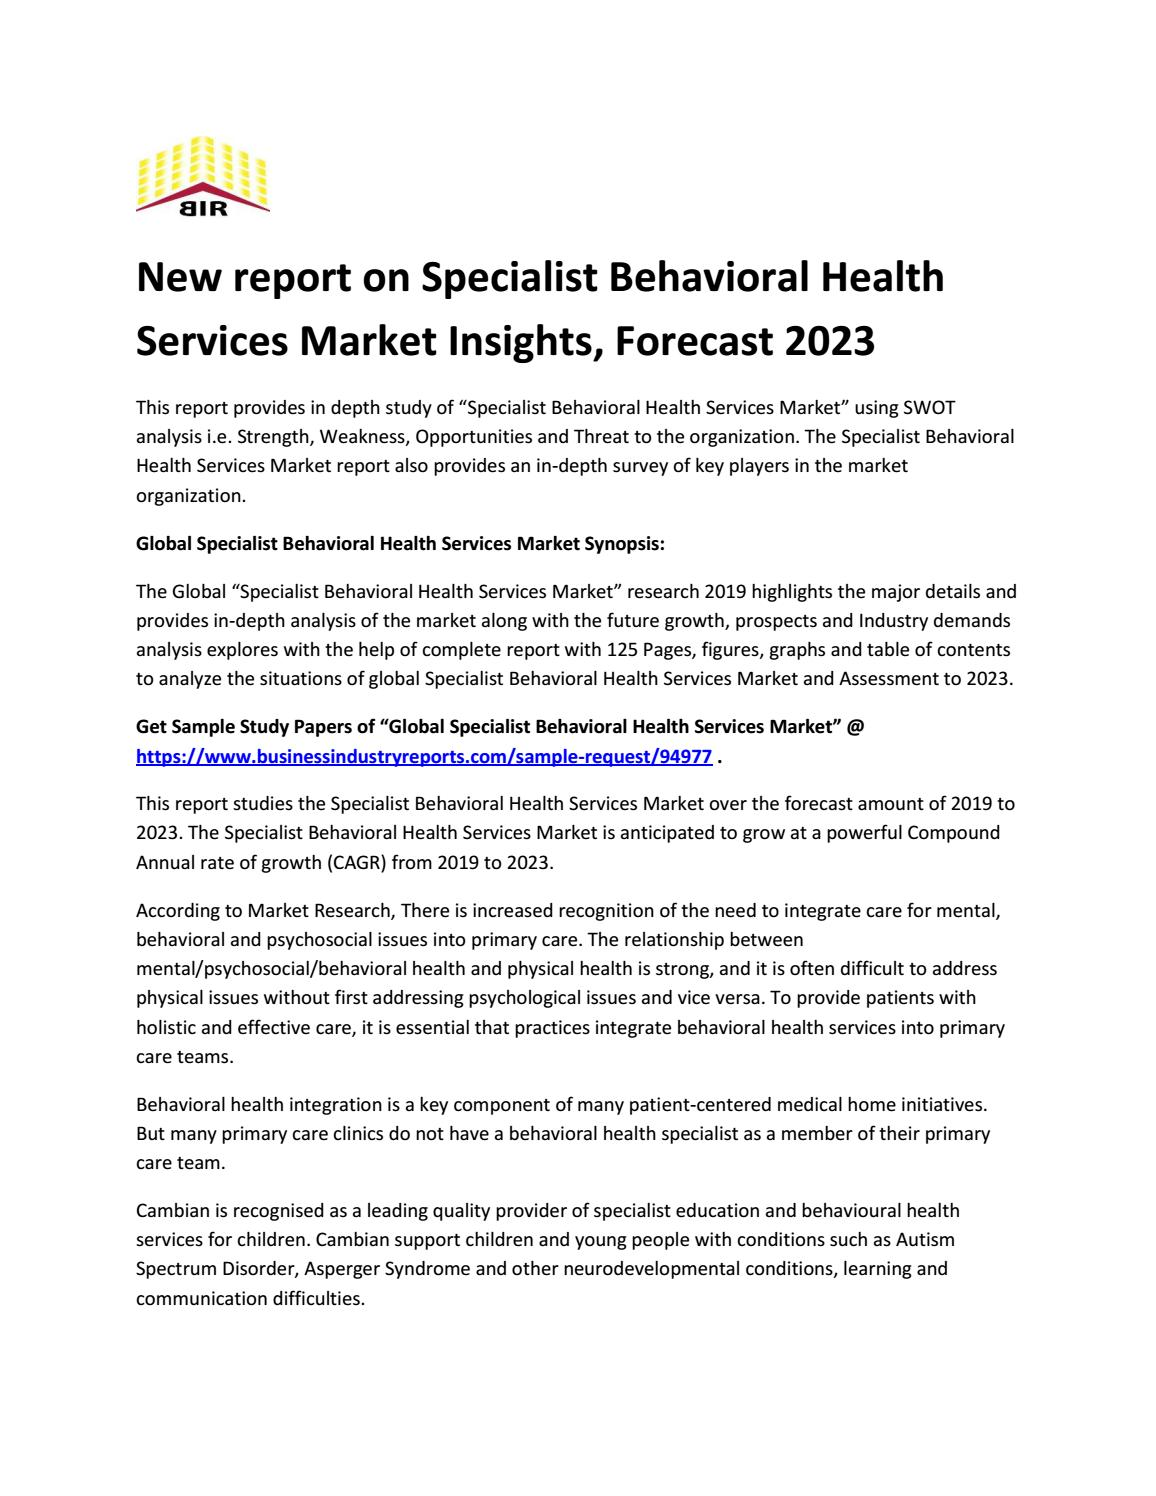 Specialist Behavioral Health Services Market Analysis Reveals Explosive Growth By 2023 By Businessindustryreports10 Issuu